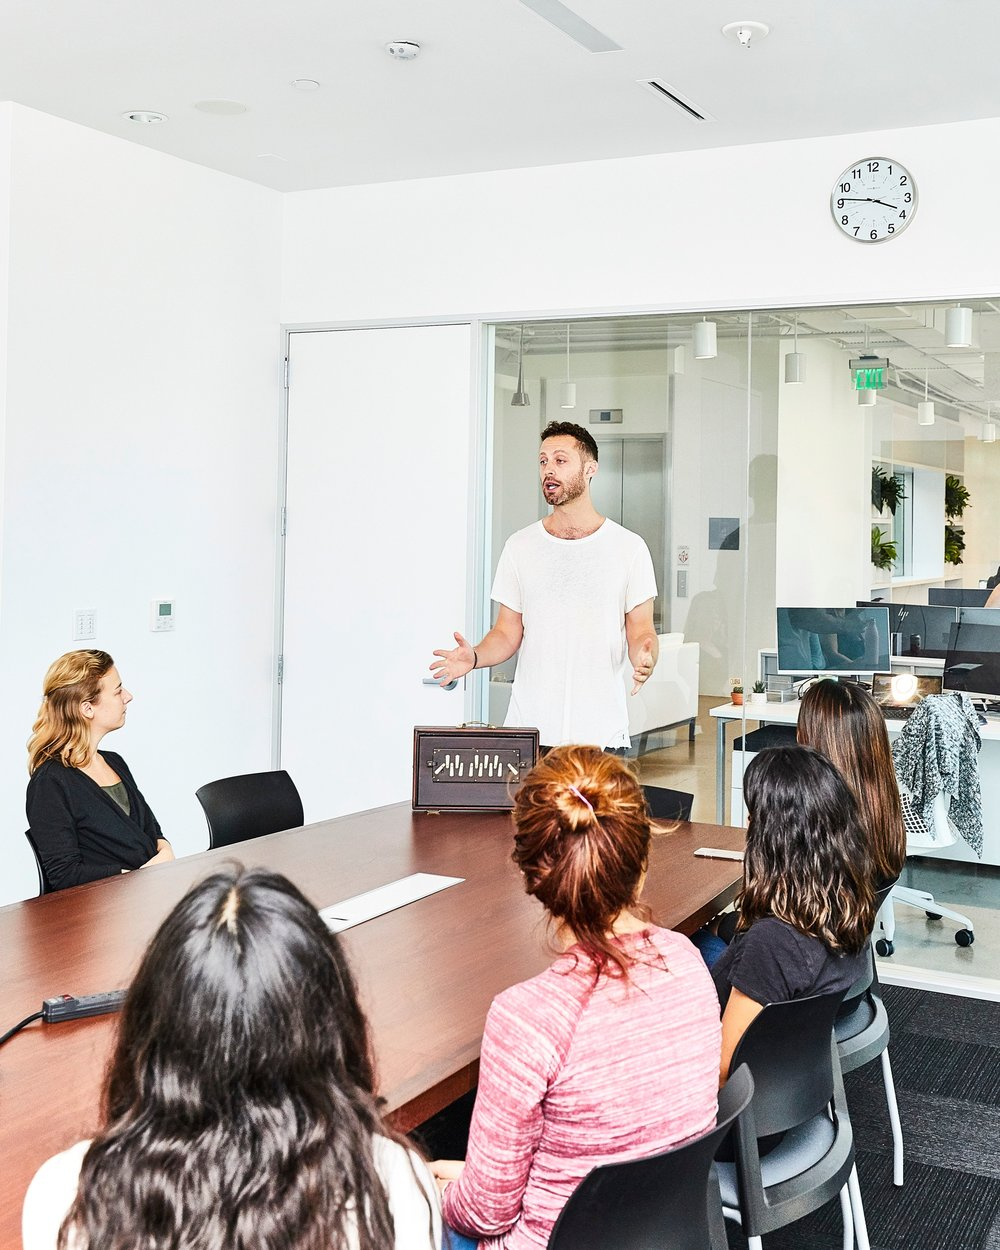 Jesse also offers corporate meditation sessions and courses -